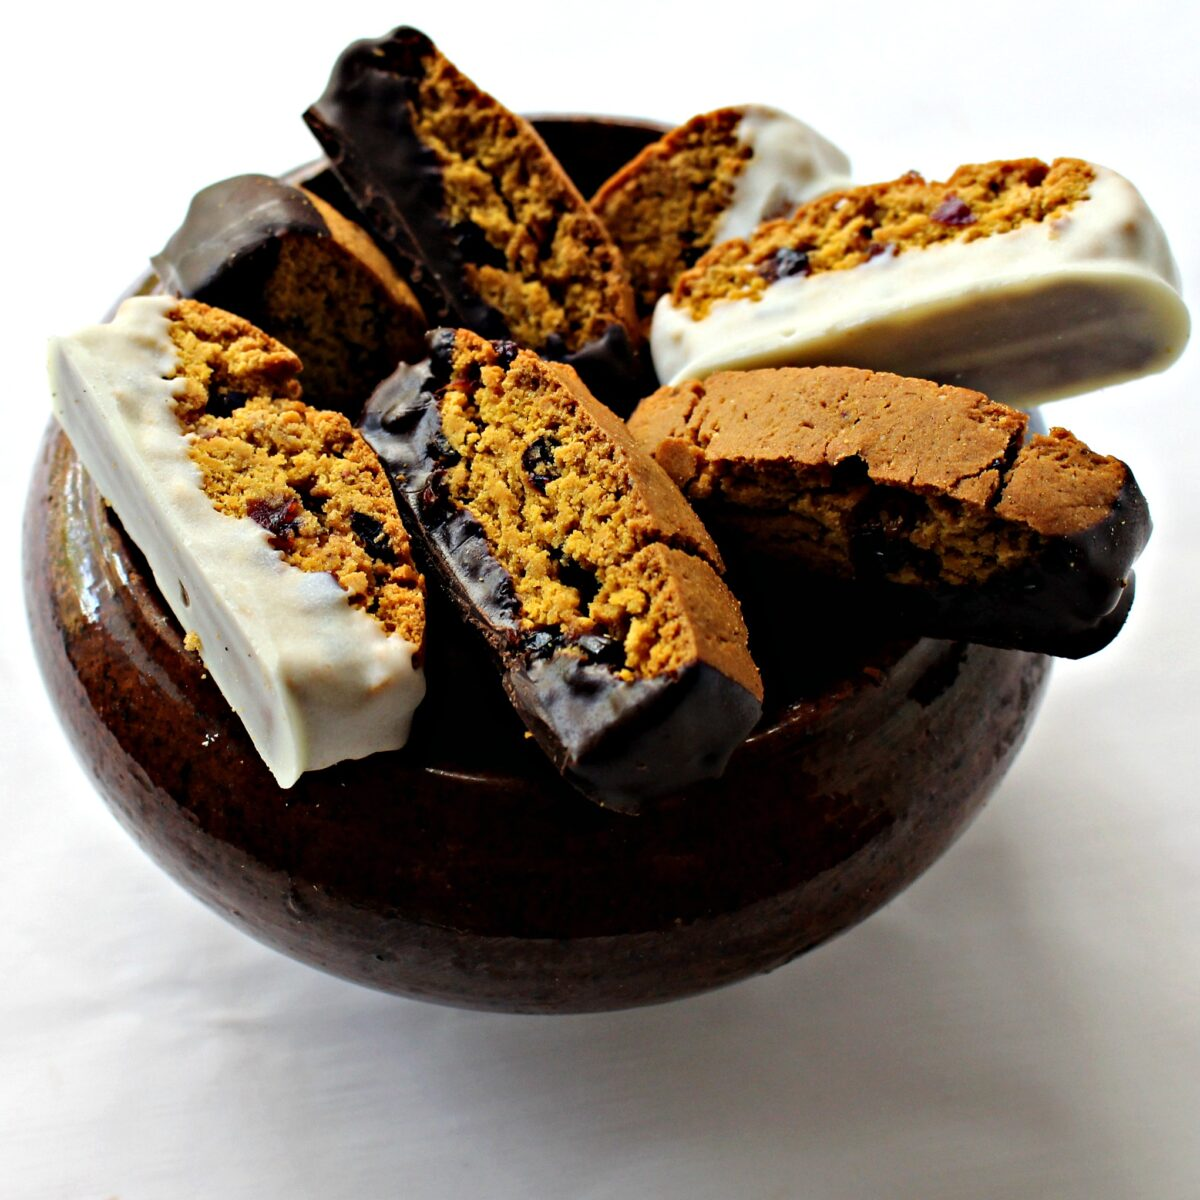 Biscotti in a brown pottery bowl with white chocolate or dark chocolate dipped bottoms.